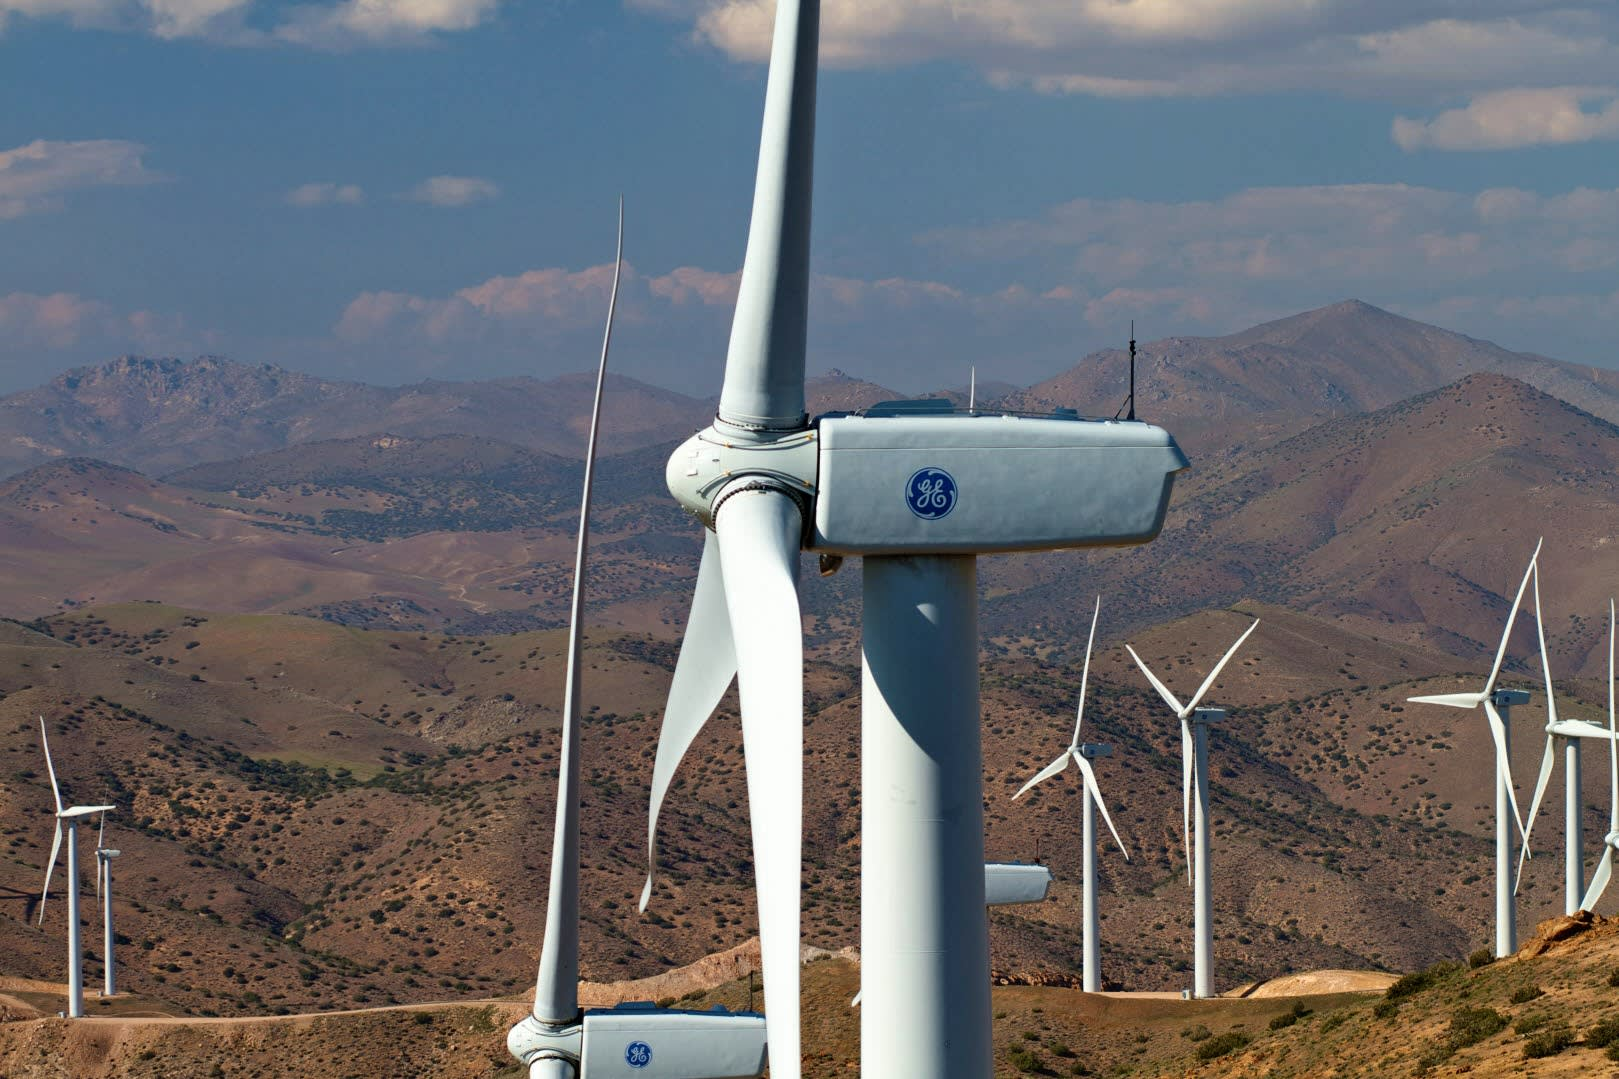 Brazil: fourth GE turbine collapse in Americas in less than